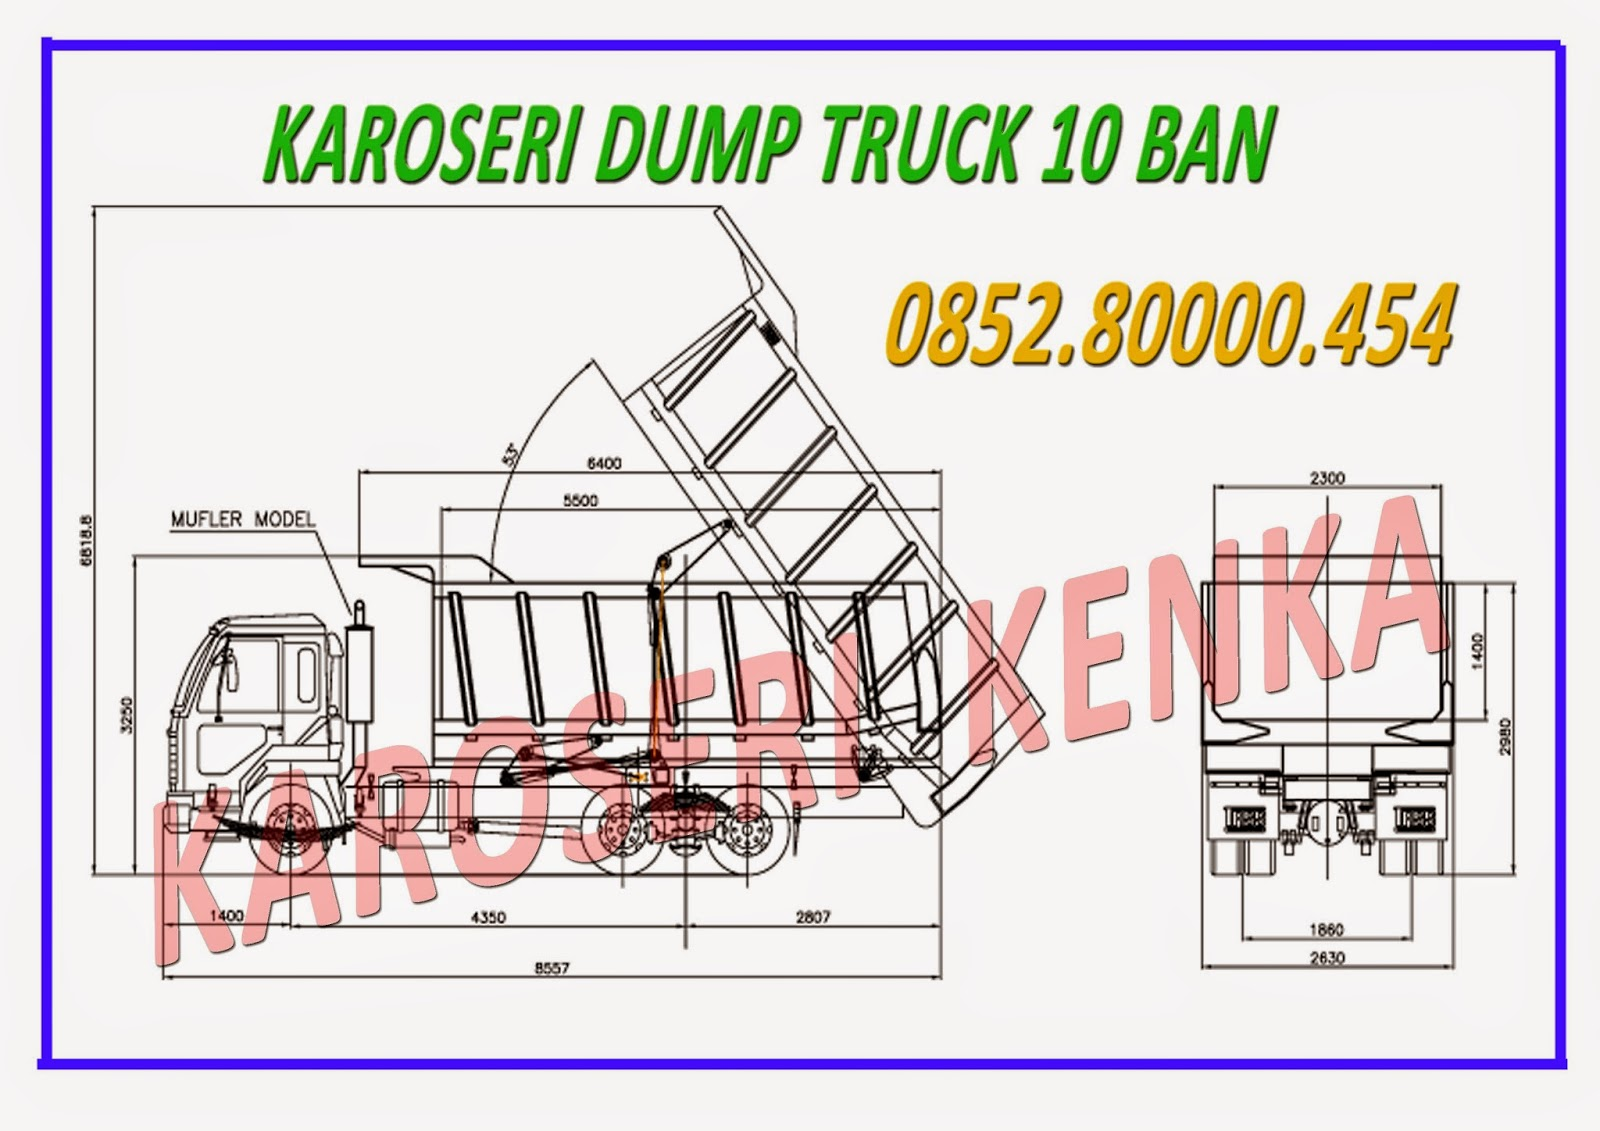 Trailers additionally Circletservices together with Lh410 also Watch also Index. on dump truck hauling